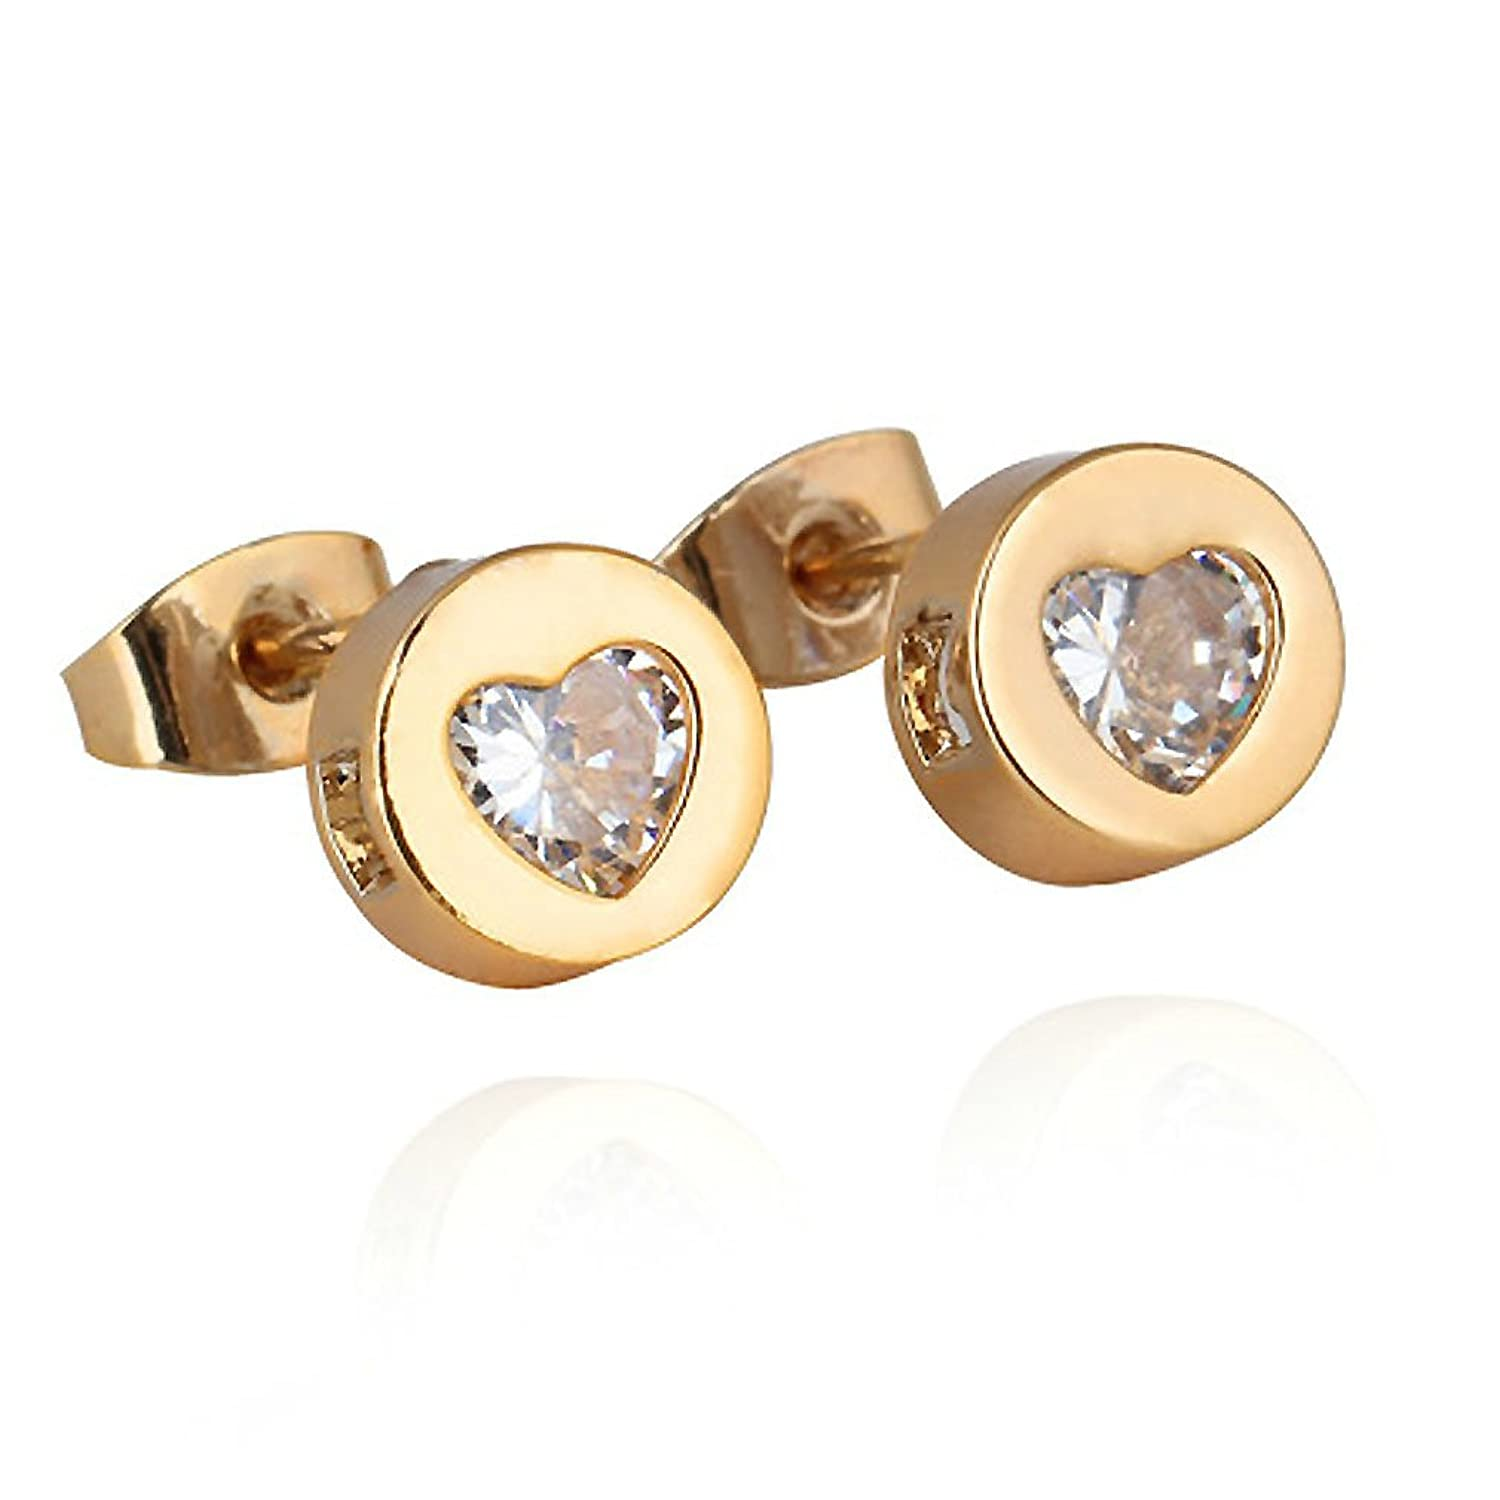 PROMOTIONS Yellow Gold Earrings Studs For Women Girls Ladies Gift ...